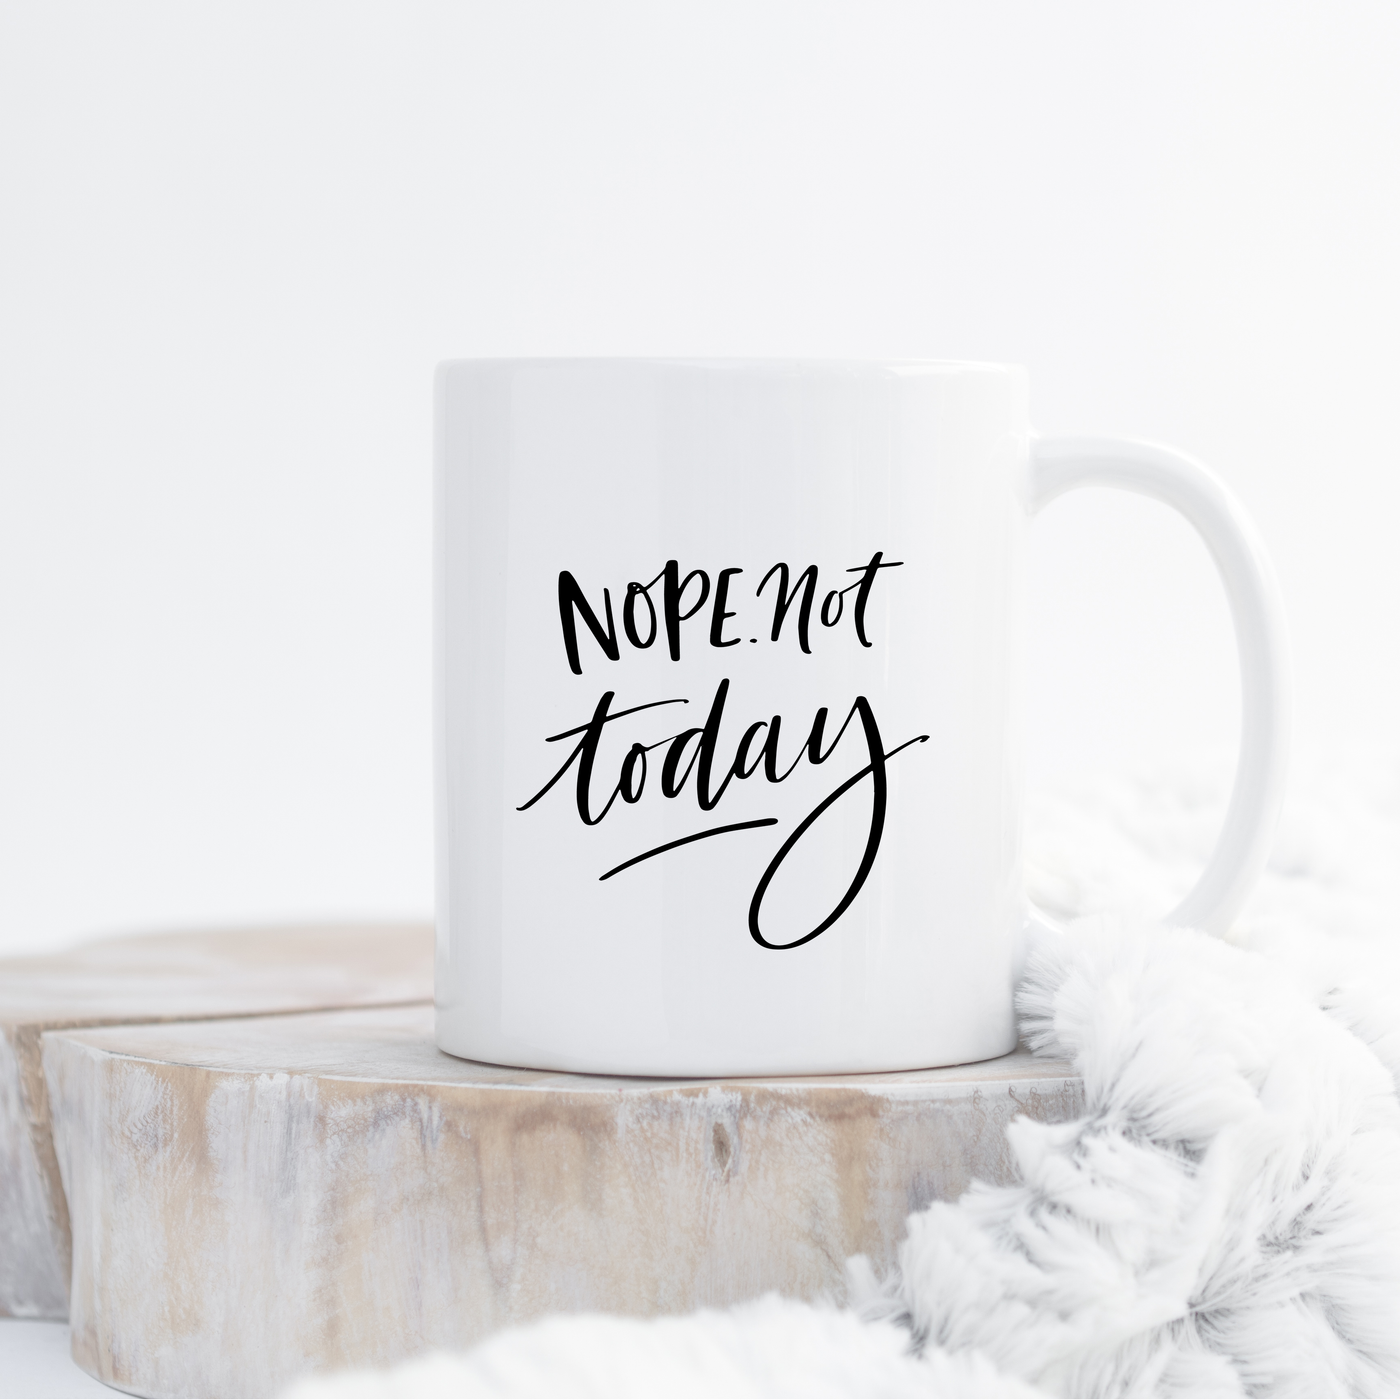 'Nope Not Today' Mug